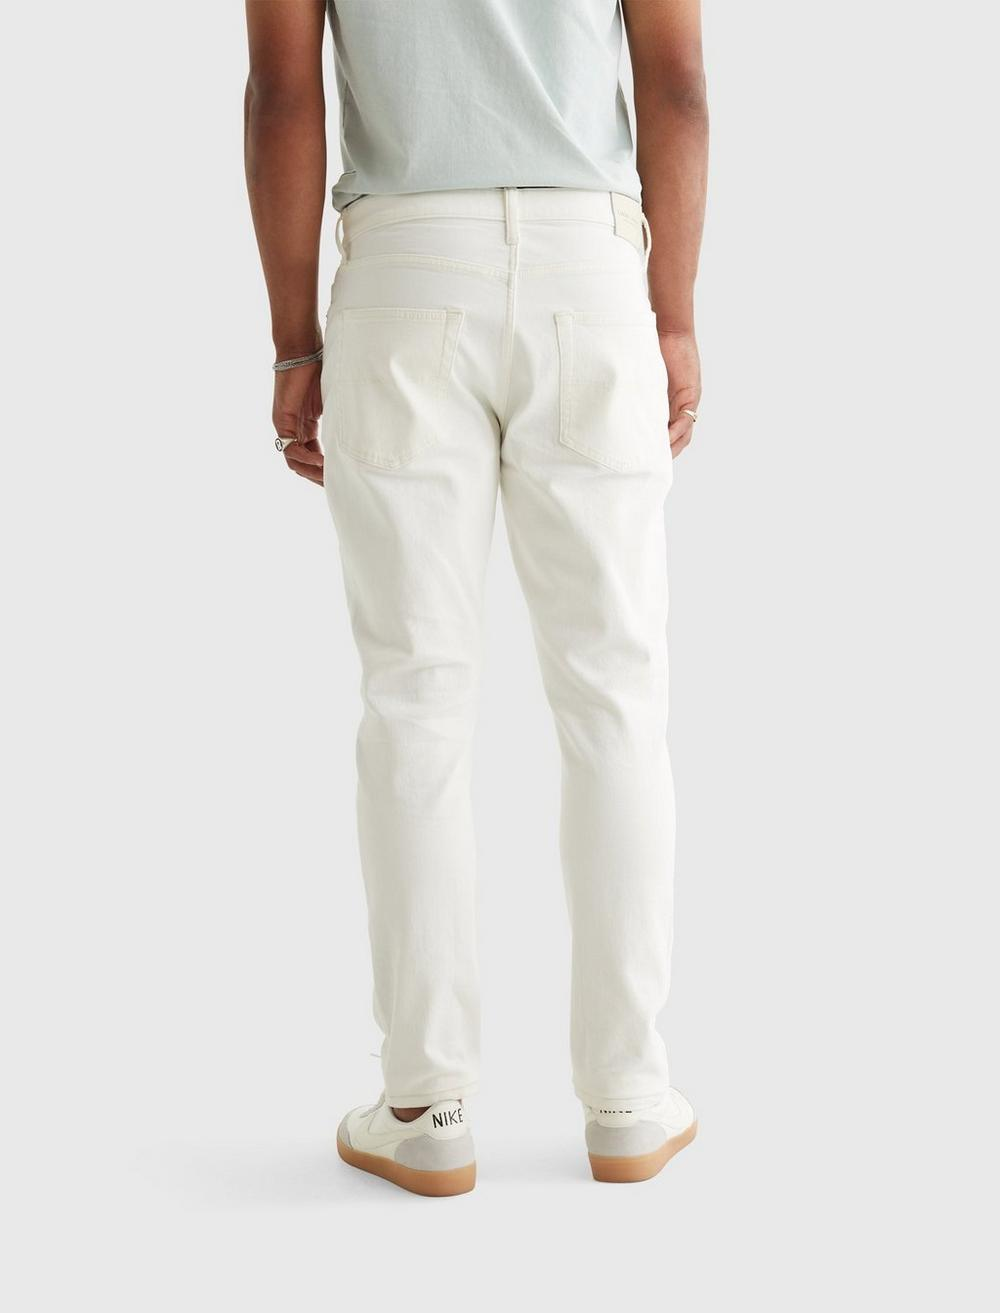 411 ATHLETIC TAPER COMFORT STRETCH JEAN, image 3